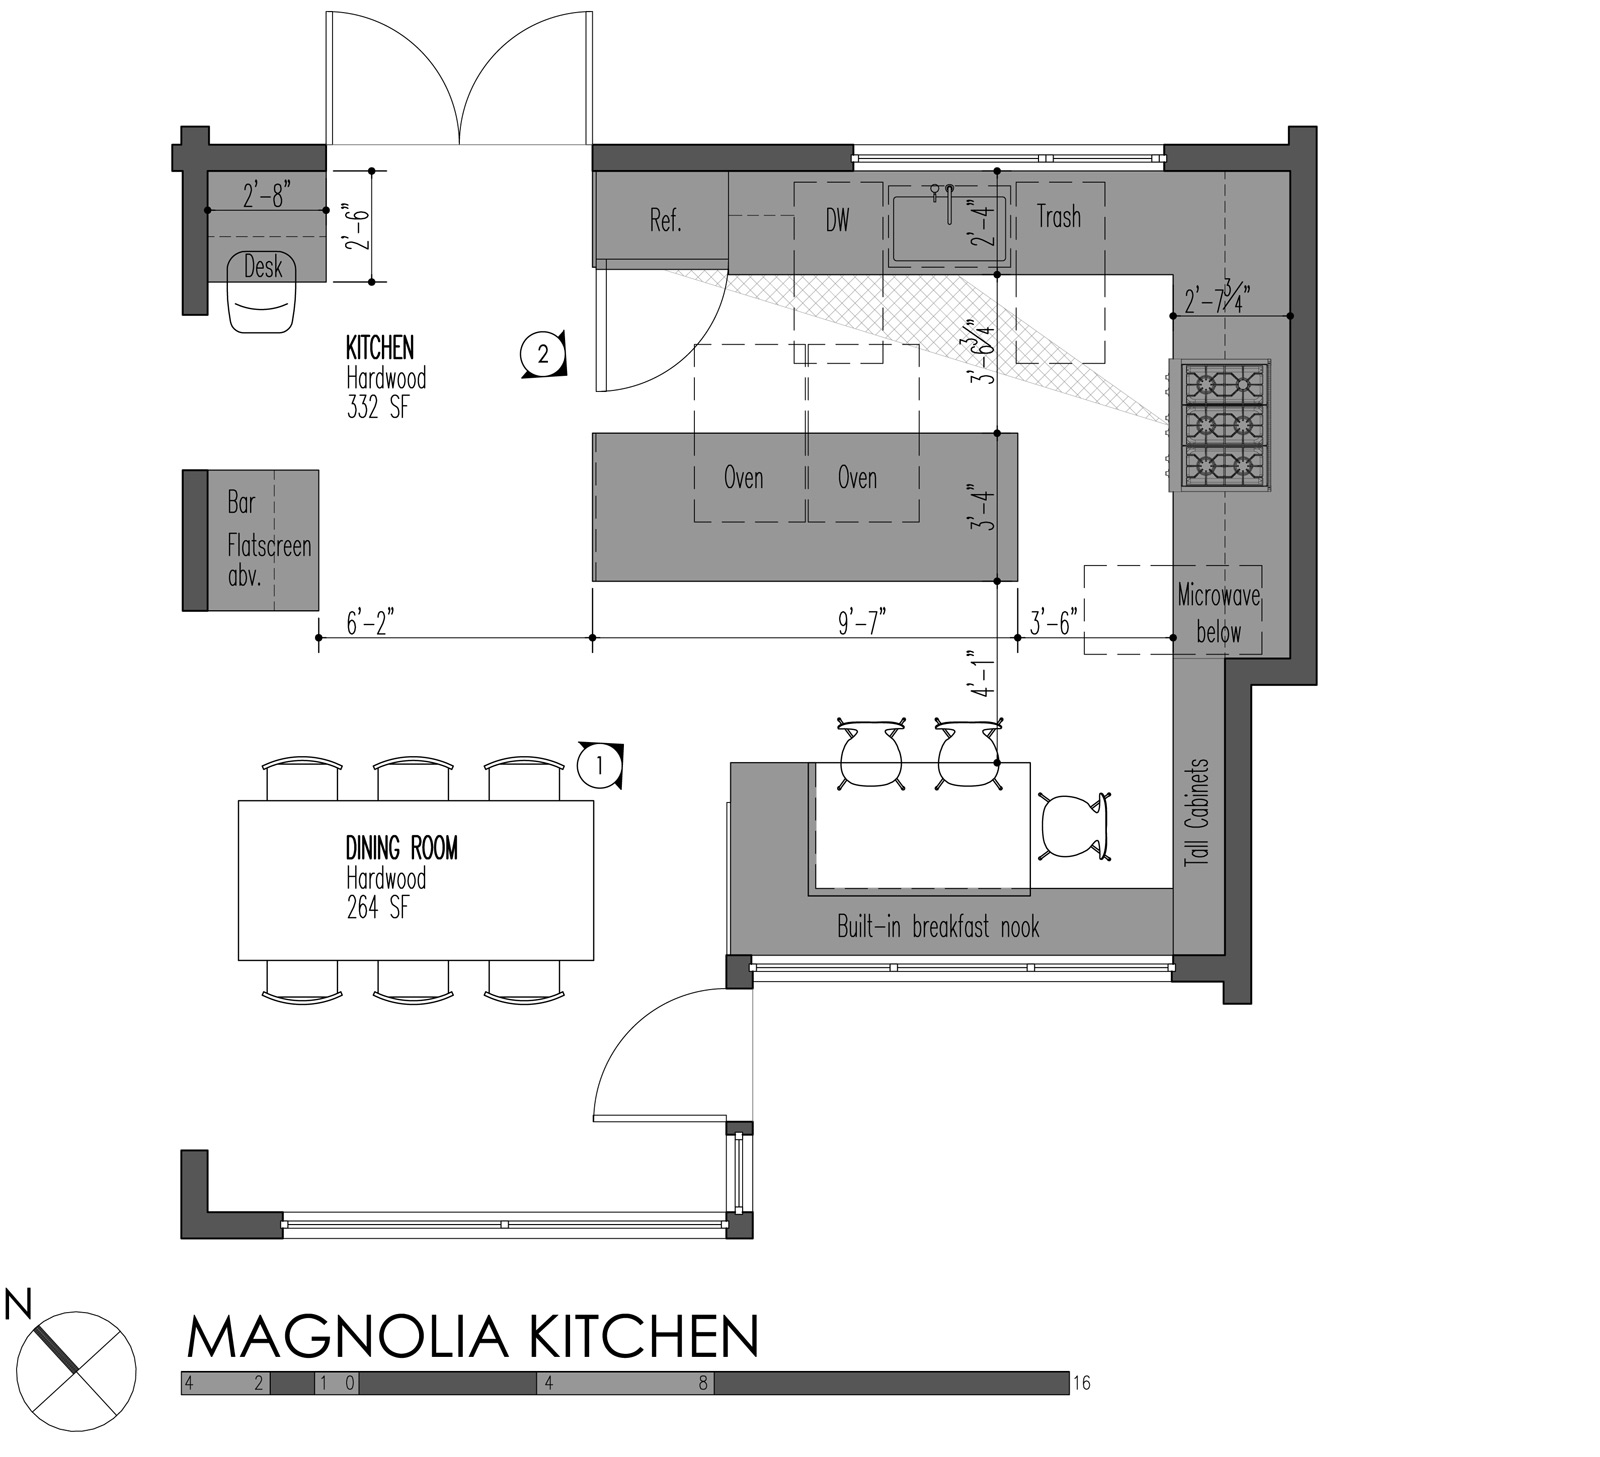 Kitchen Design Dishwasher Placement 5 modern kitchen designs & principles | build blog